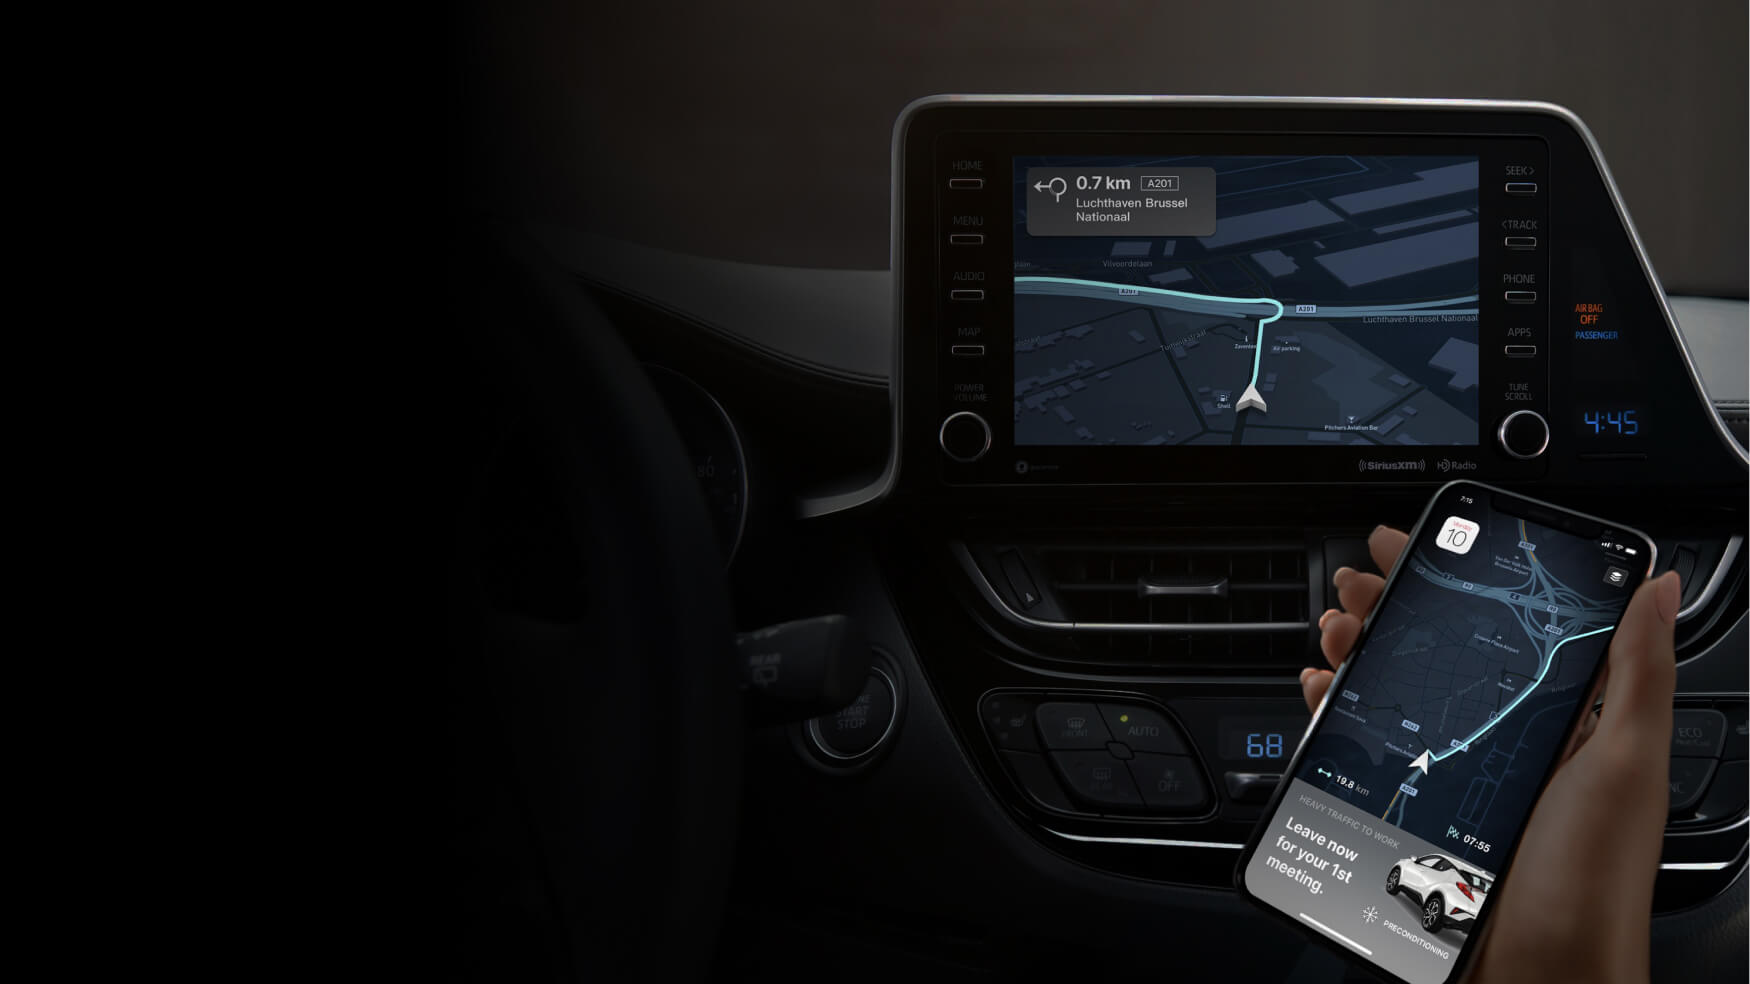 Mapbox in-car navigation on a car screen and on mobile phone.